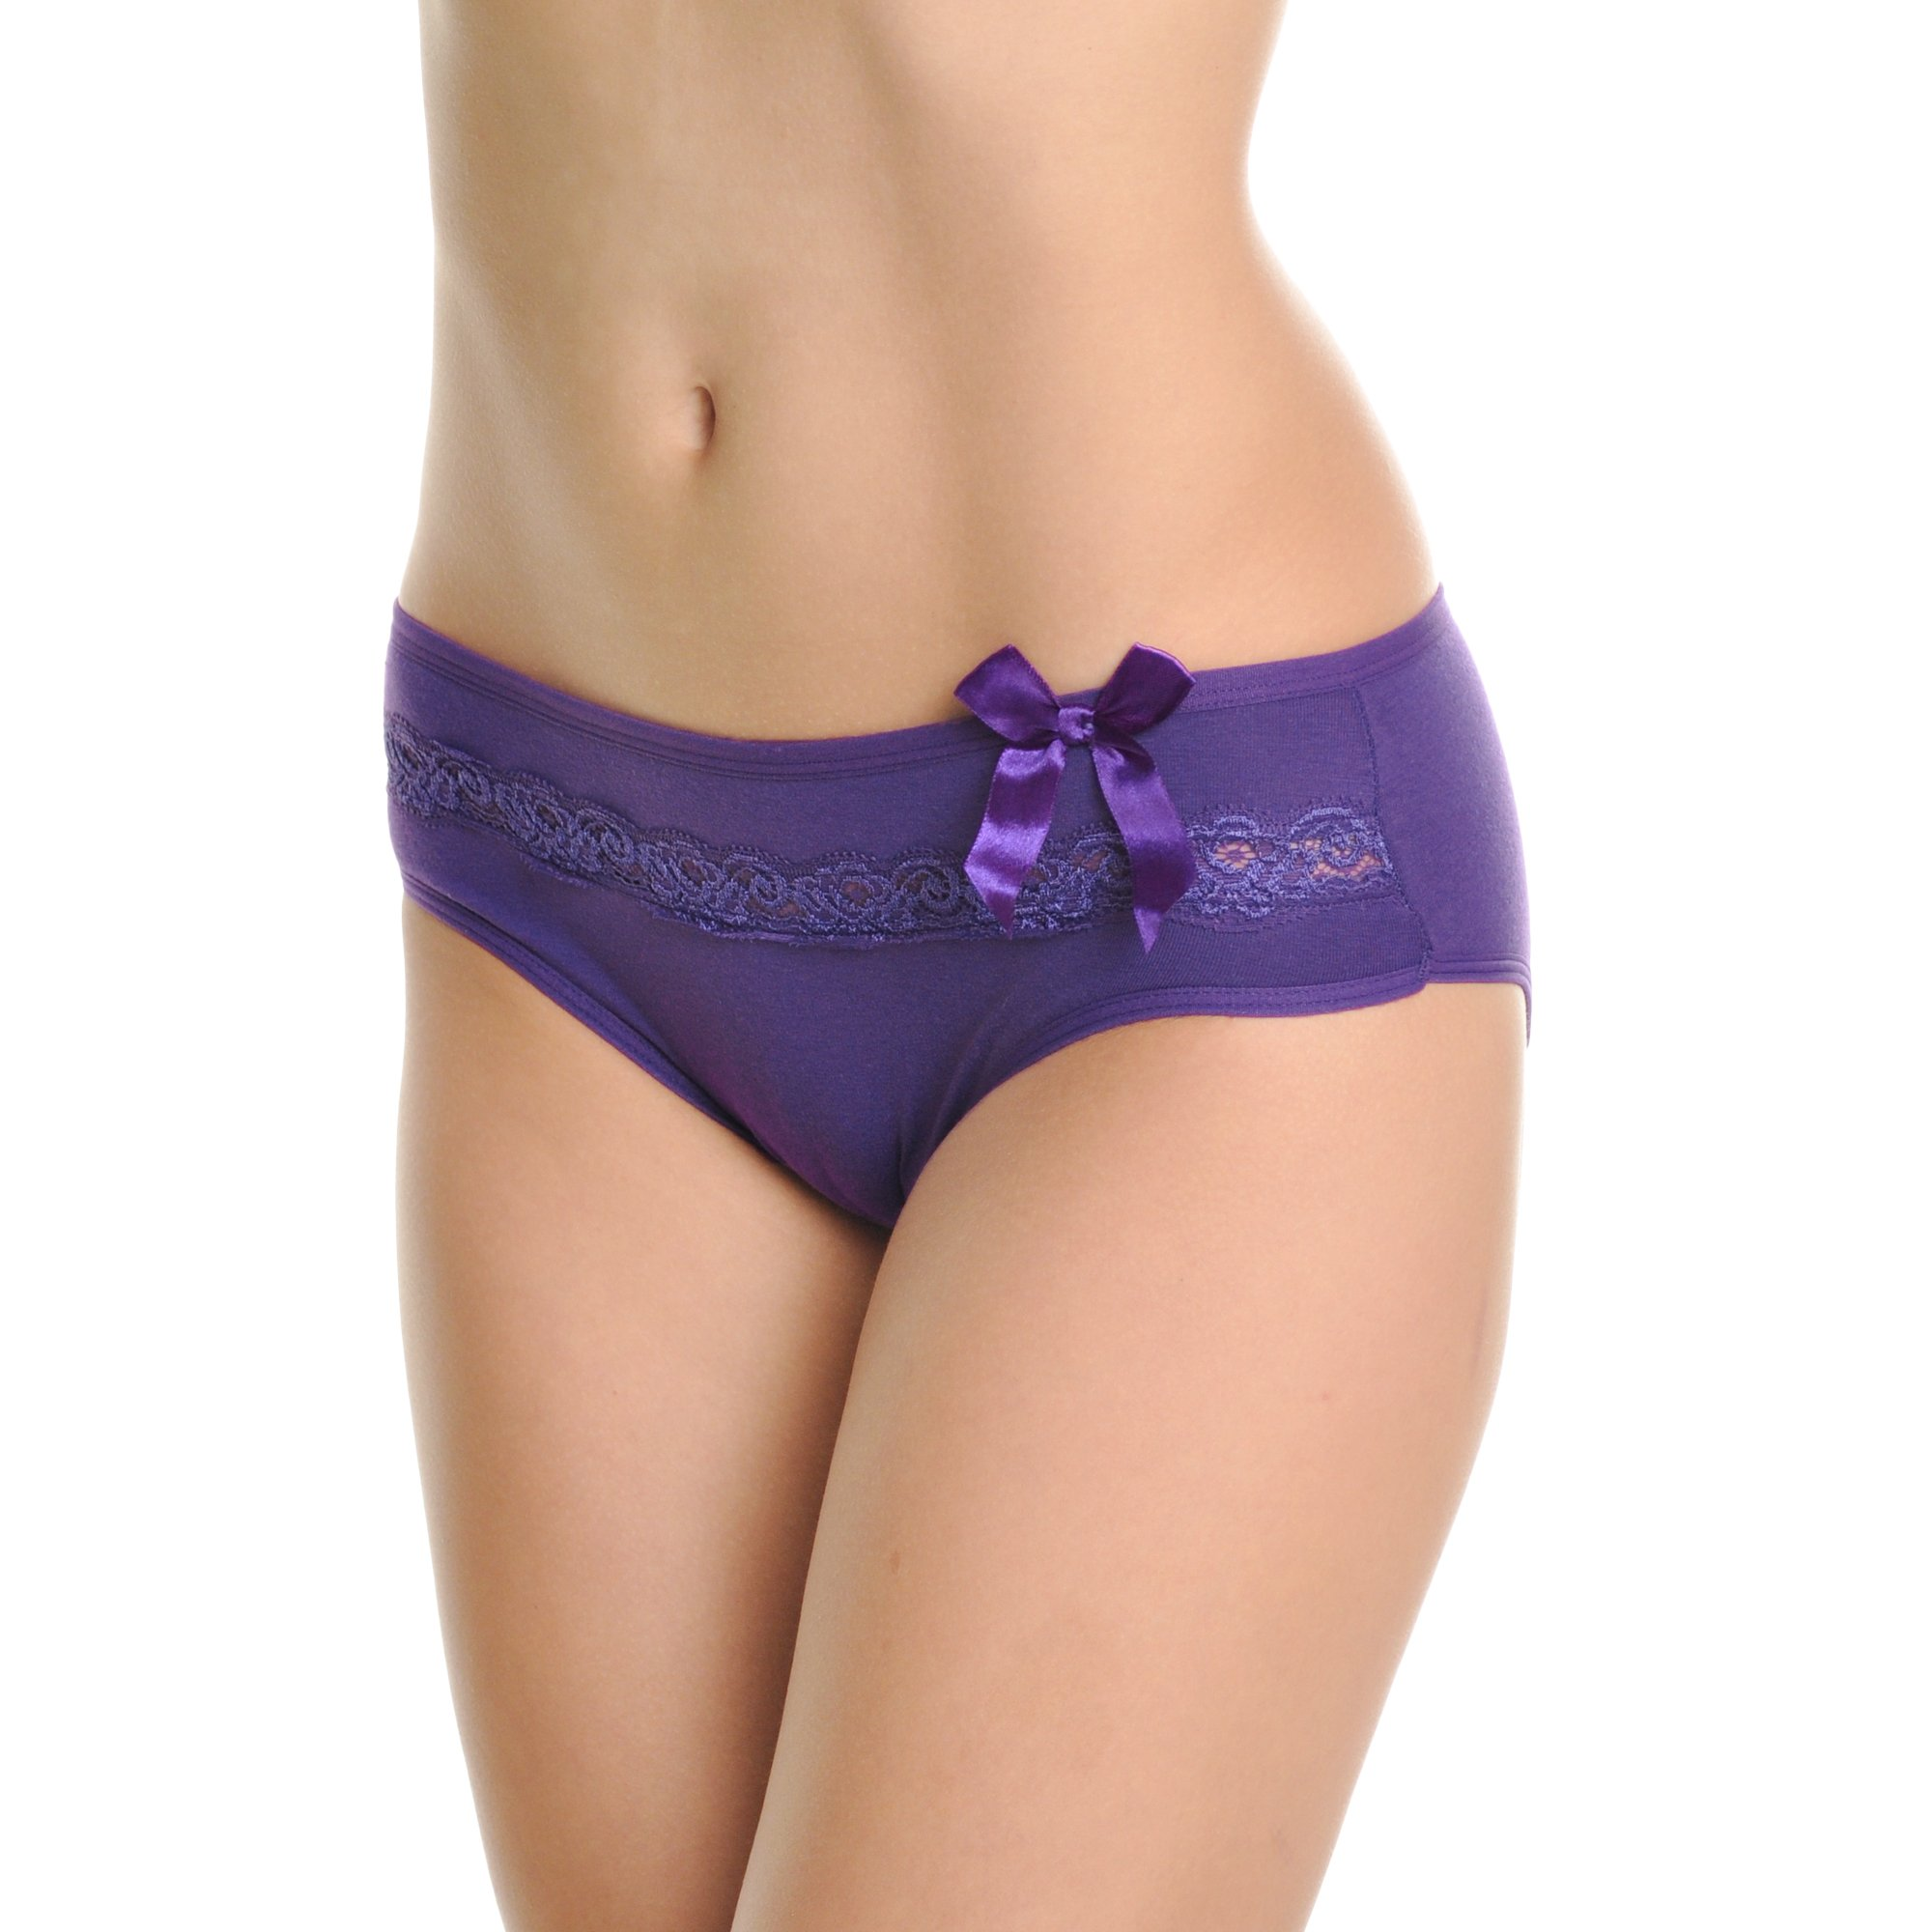 Angelina Cotton Hiphugger with Rose Lace Trim (6-Pack), G6236_UL